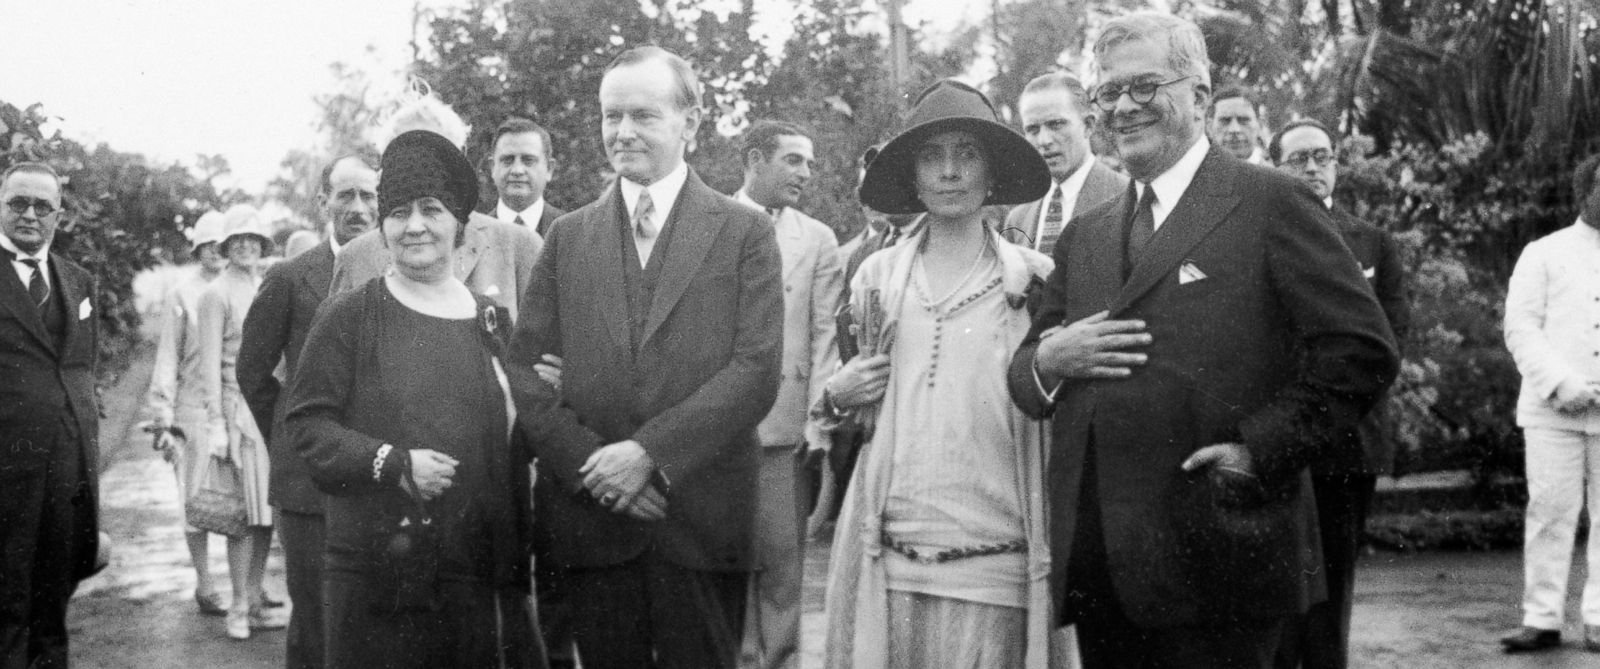 PHOTO: U.S. President Calvin Coolidge and his wife, first lady Grace Coolidge are shown with the President of Cuba General Gerardo Machado y Morales and his wife, Elvira Machado on the estate of President Machado in Havana, Cuba, Jan. 19, 1928.